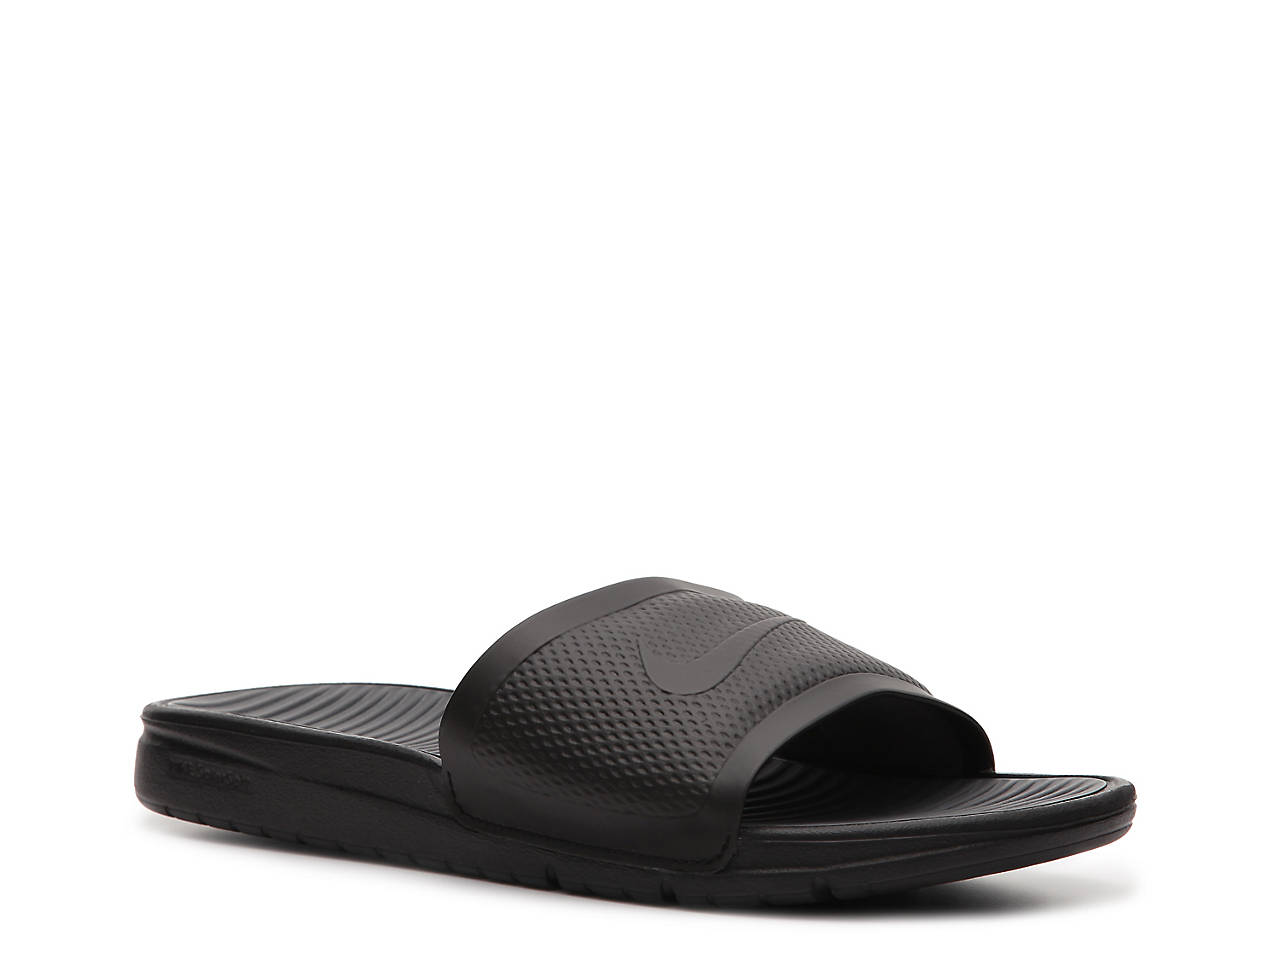 b2a8073825d97 Nike Benassi Solarsoft Slide Sandal - Men s Men s Shoes